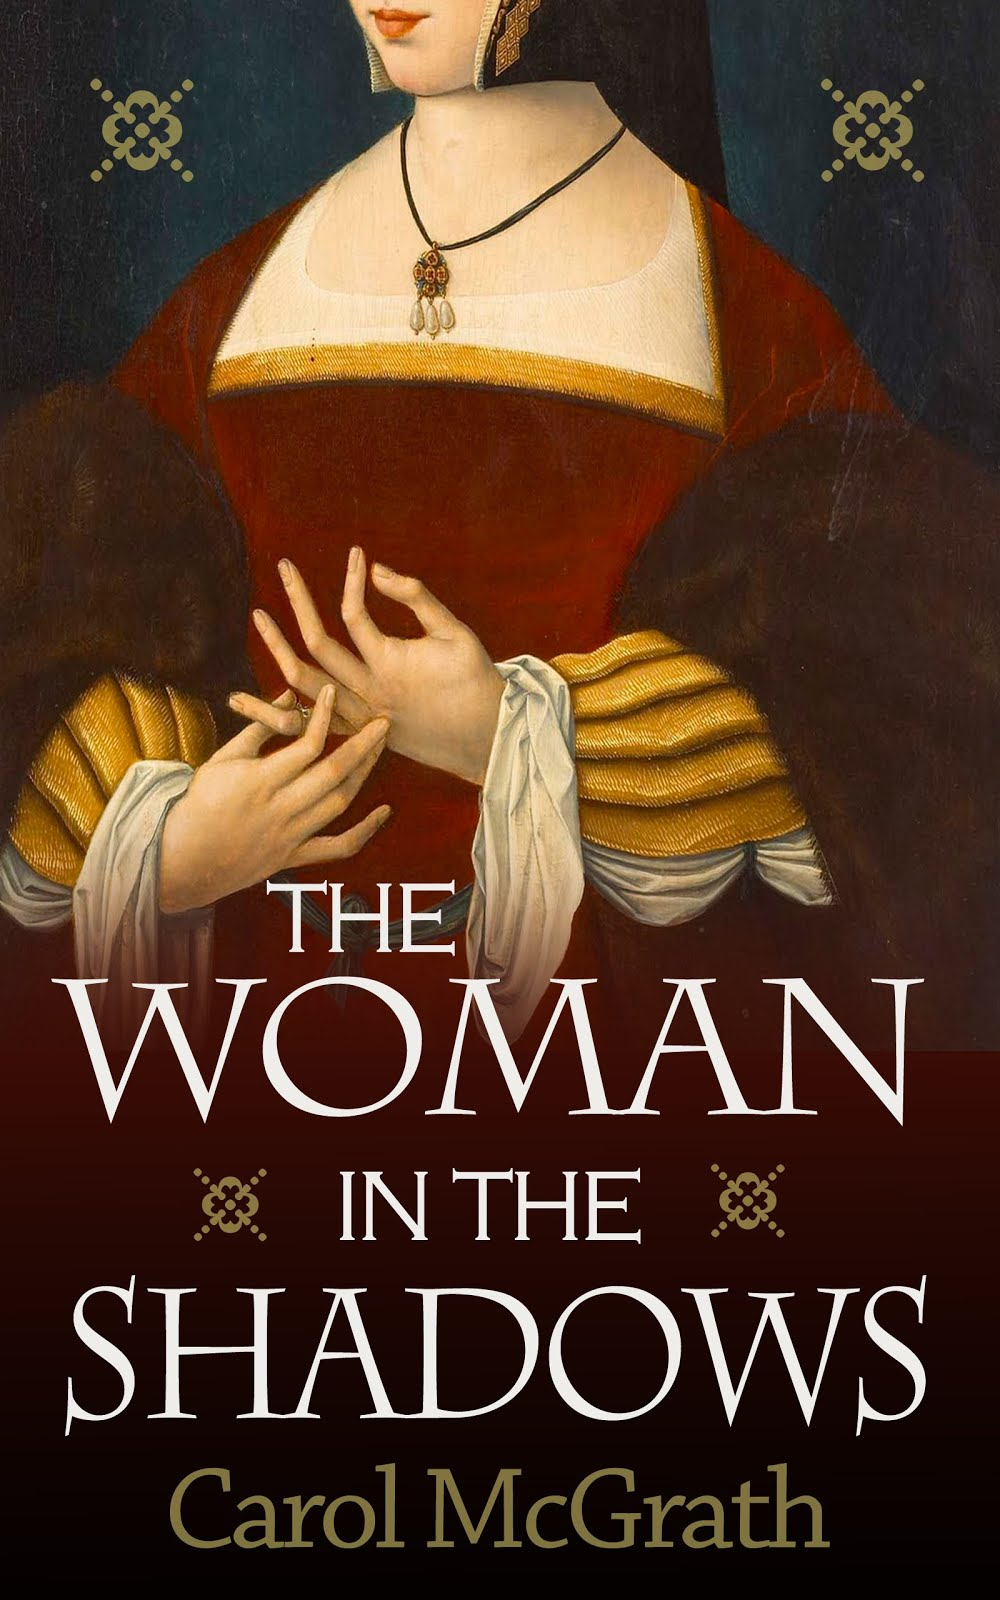 MY NEW BOOK - The Woman in the Shadows